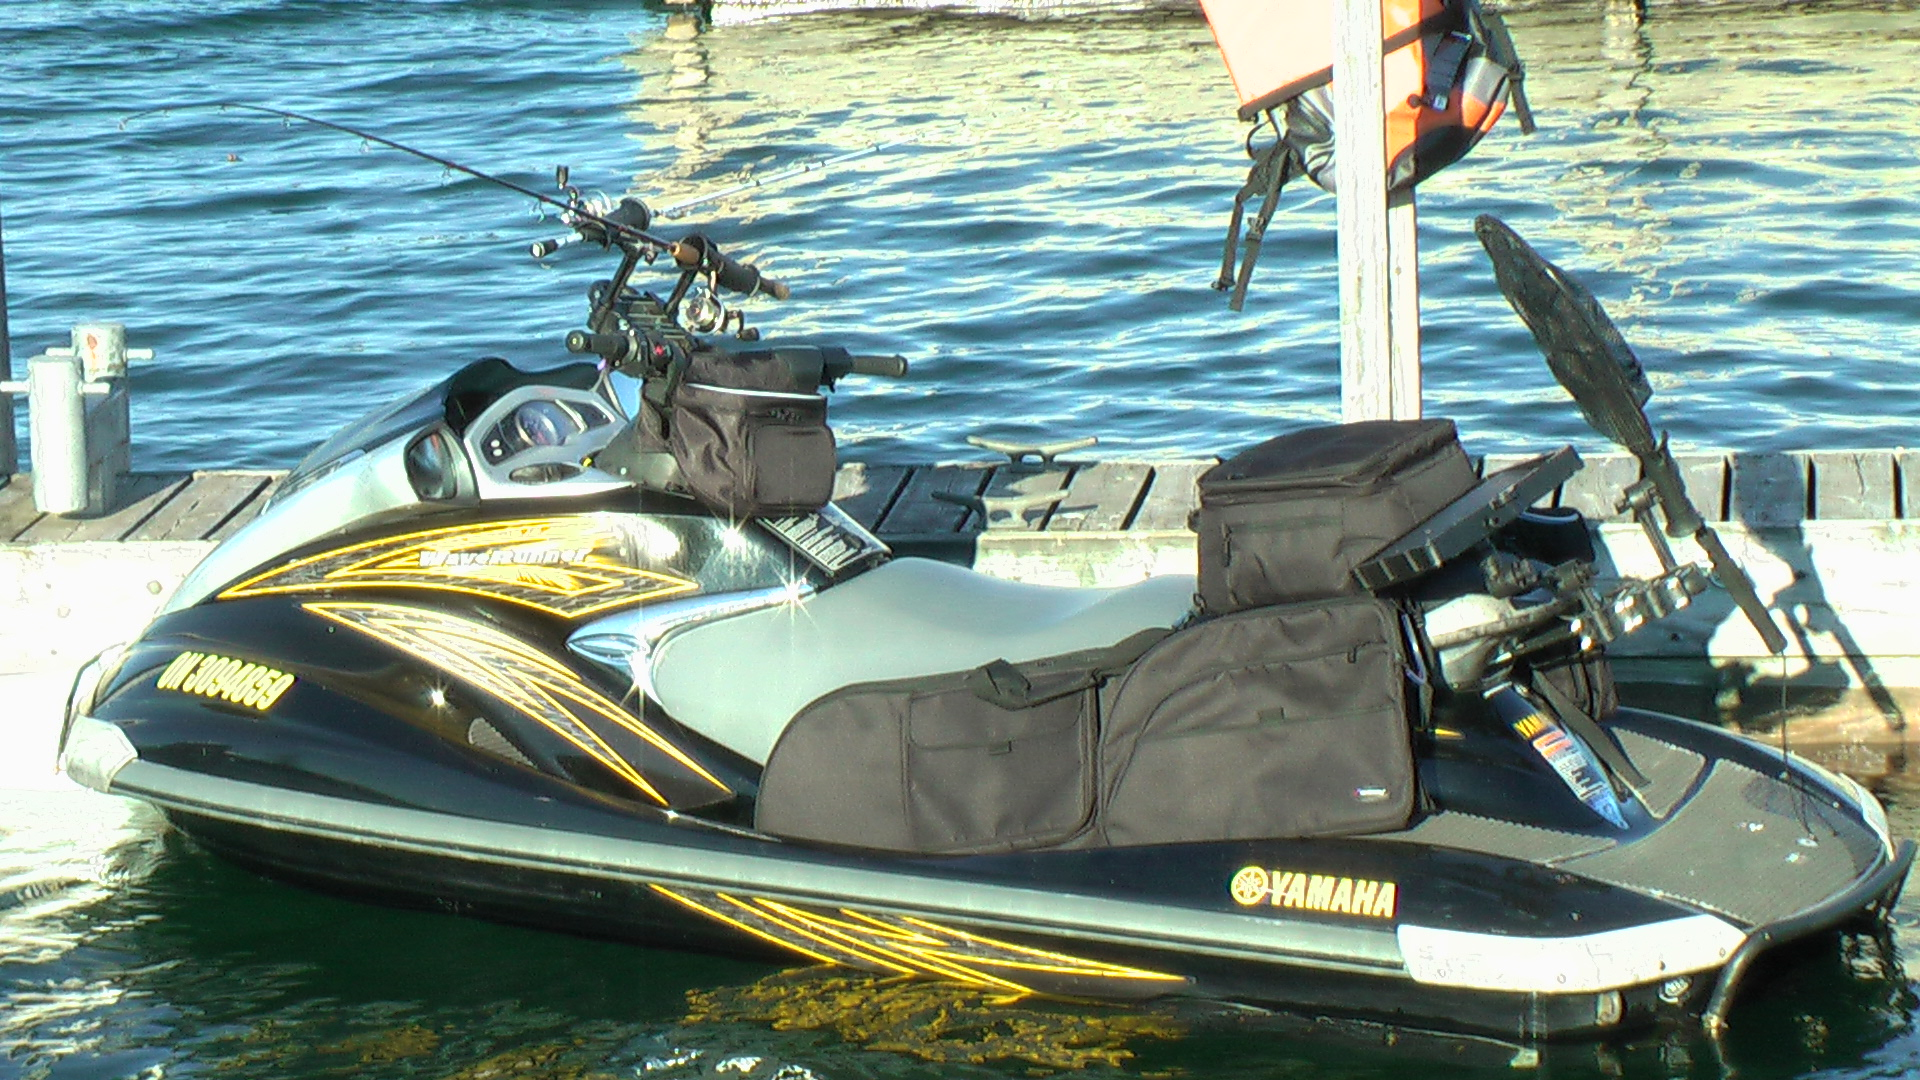 Yamaha waverruner fxho fishing